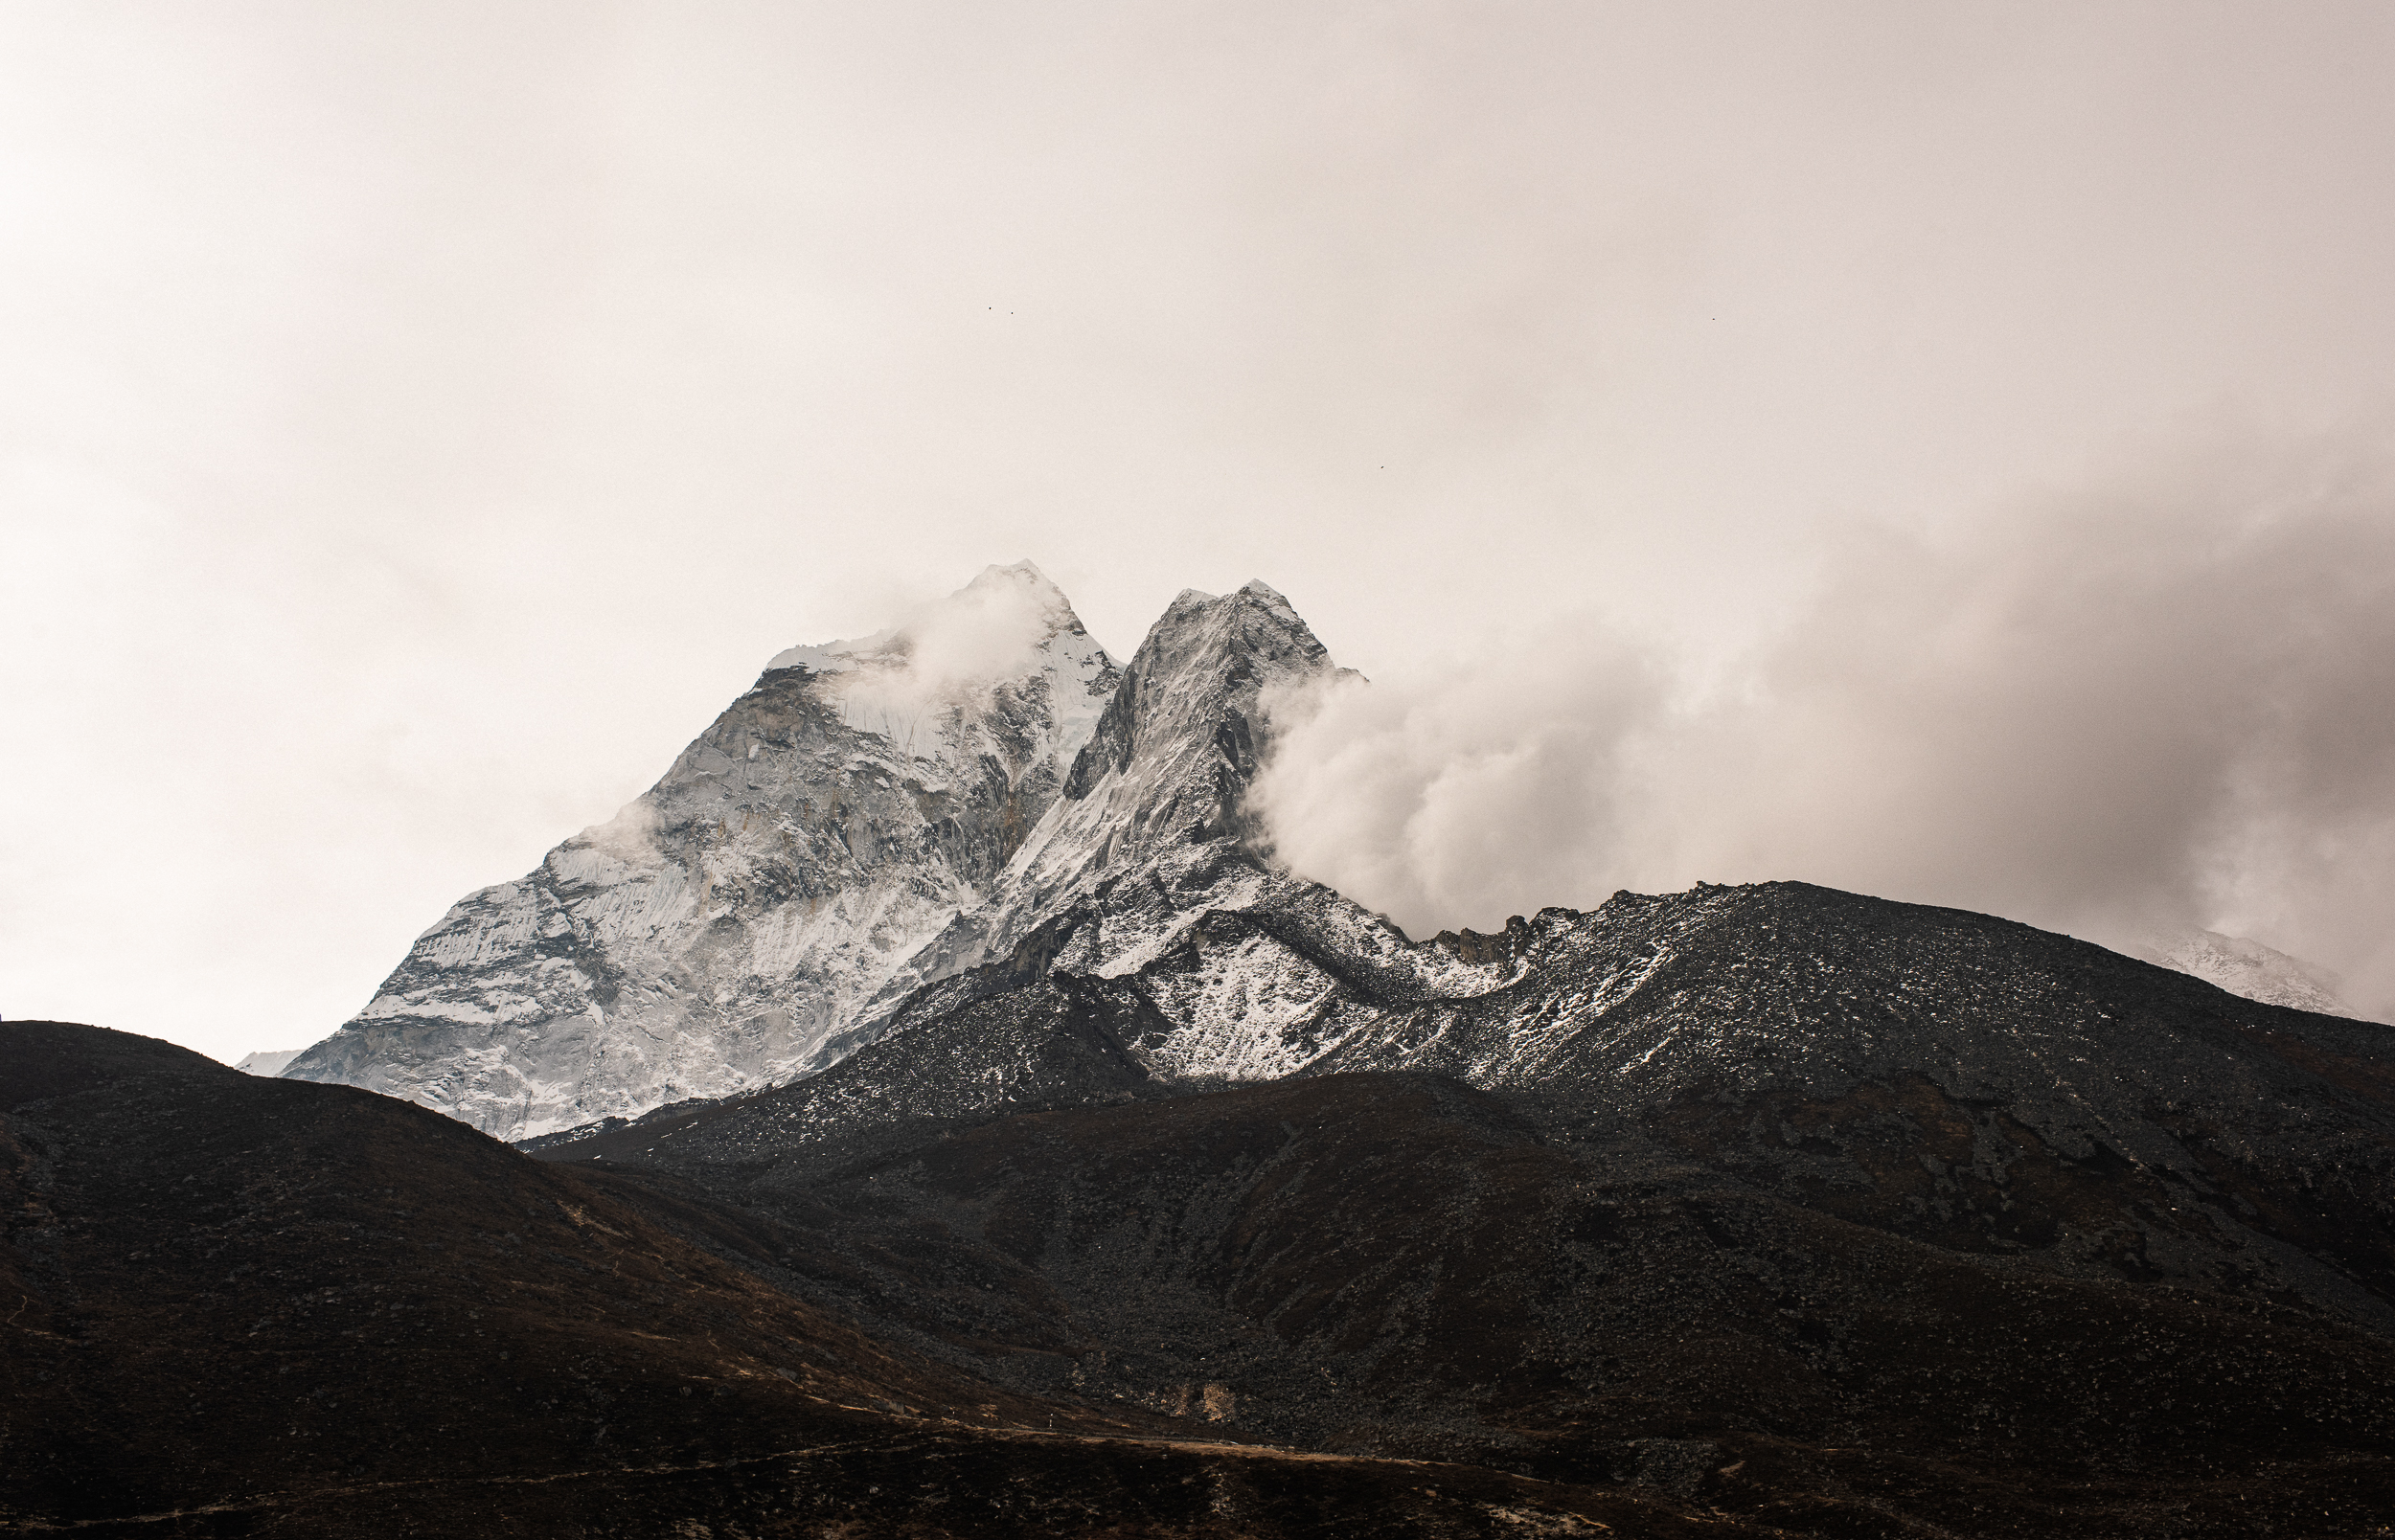 Nepal_EverestBaseCamp_2019_TaraShupe_Photography_DSC_3957.jpg